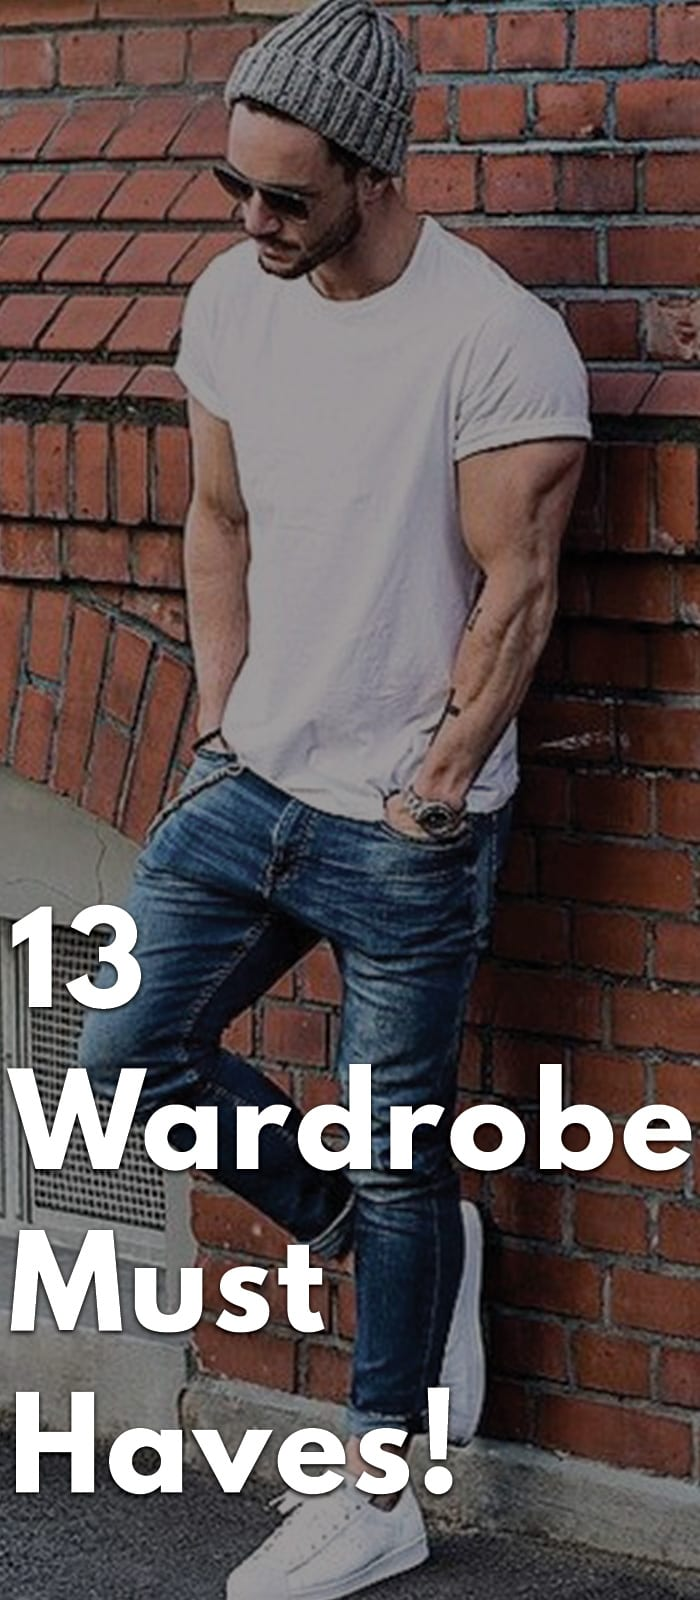 13-Wardrobe-Must-Haves!